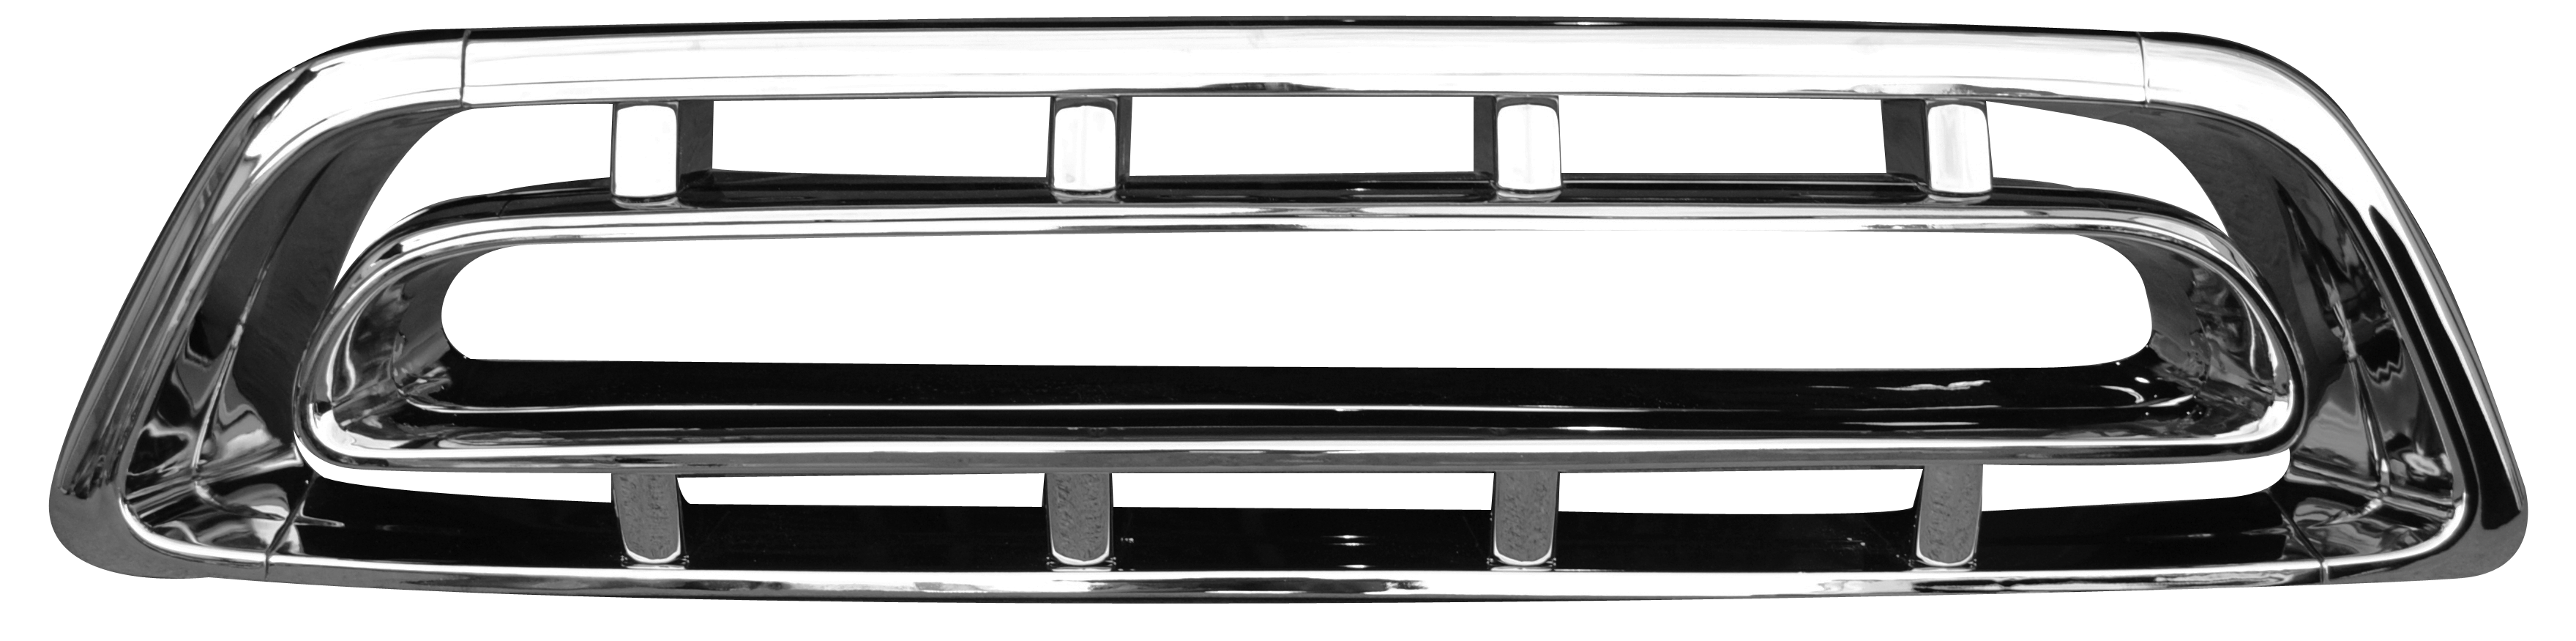 1957 C-10 grille assembly chrome